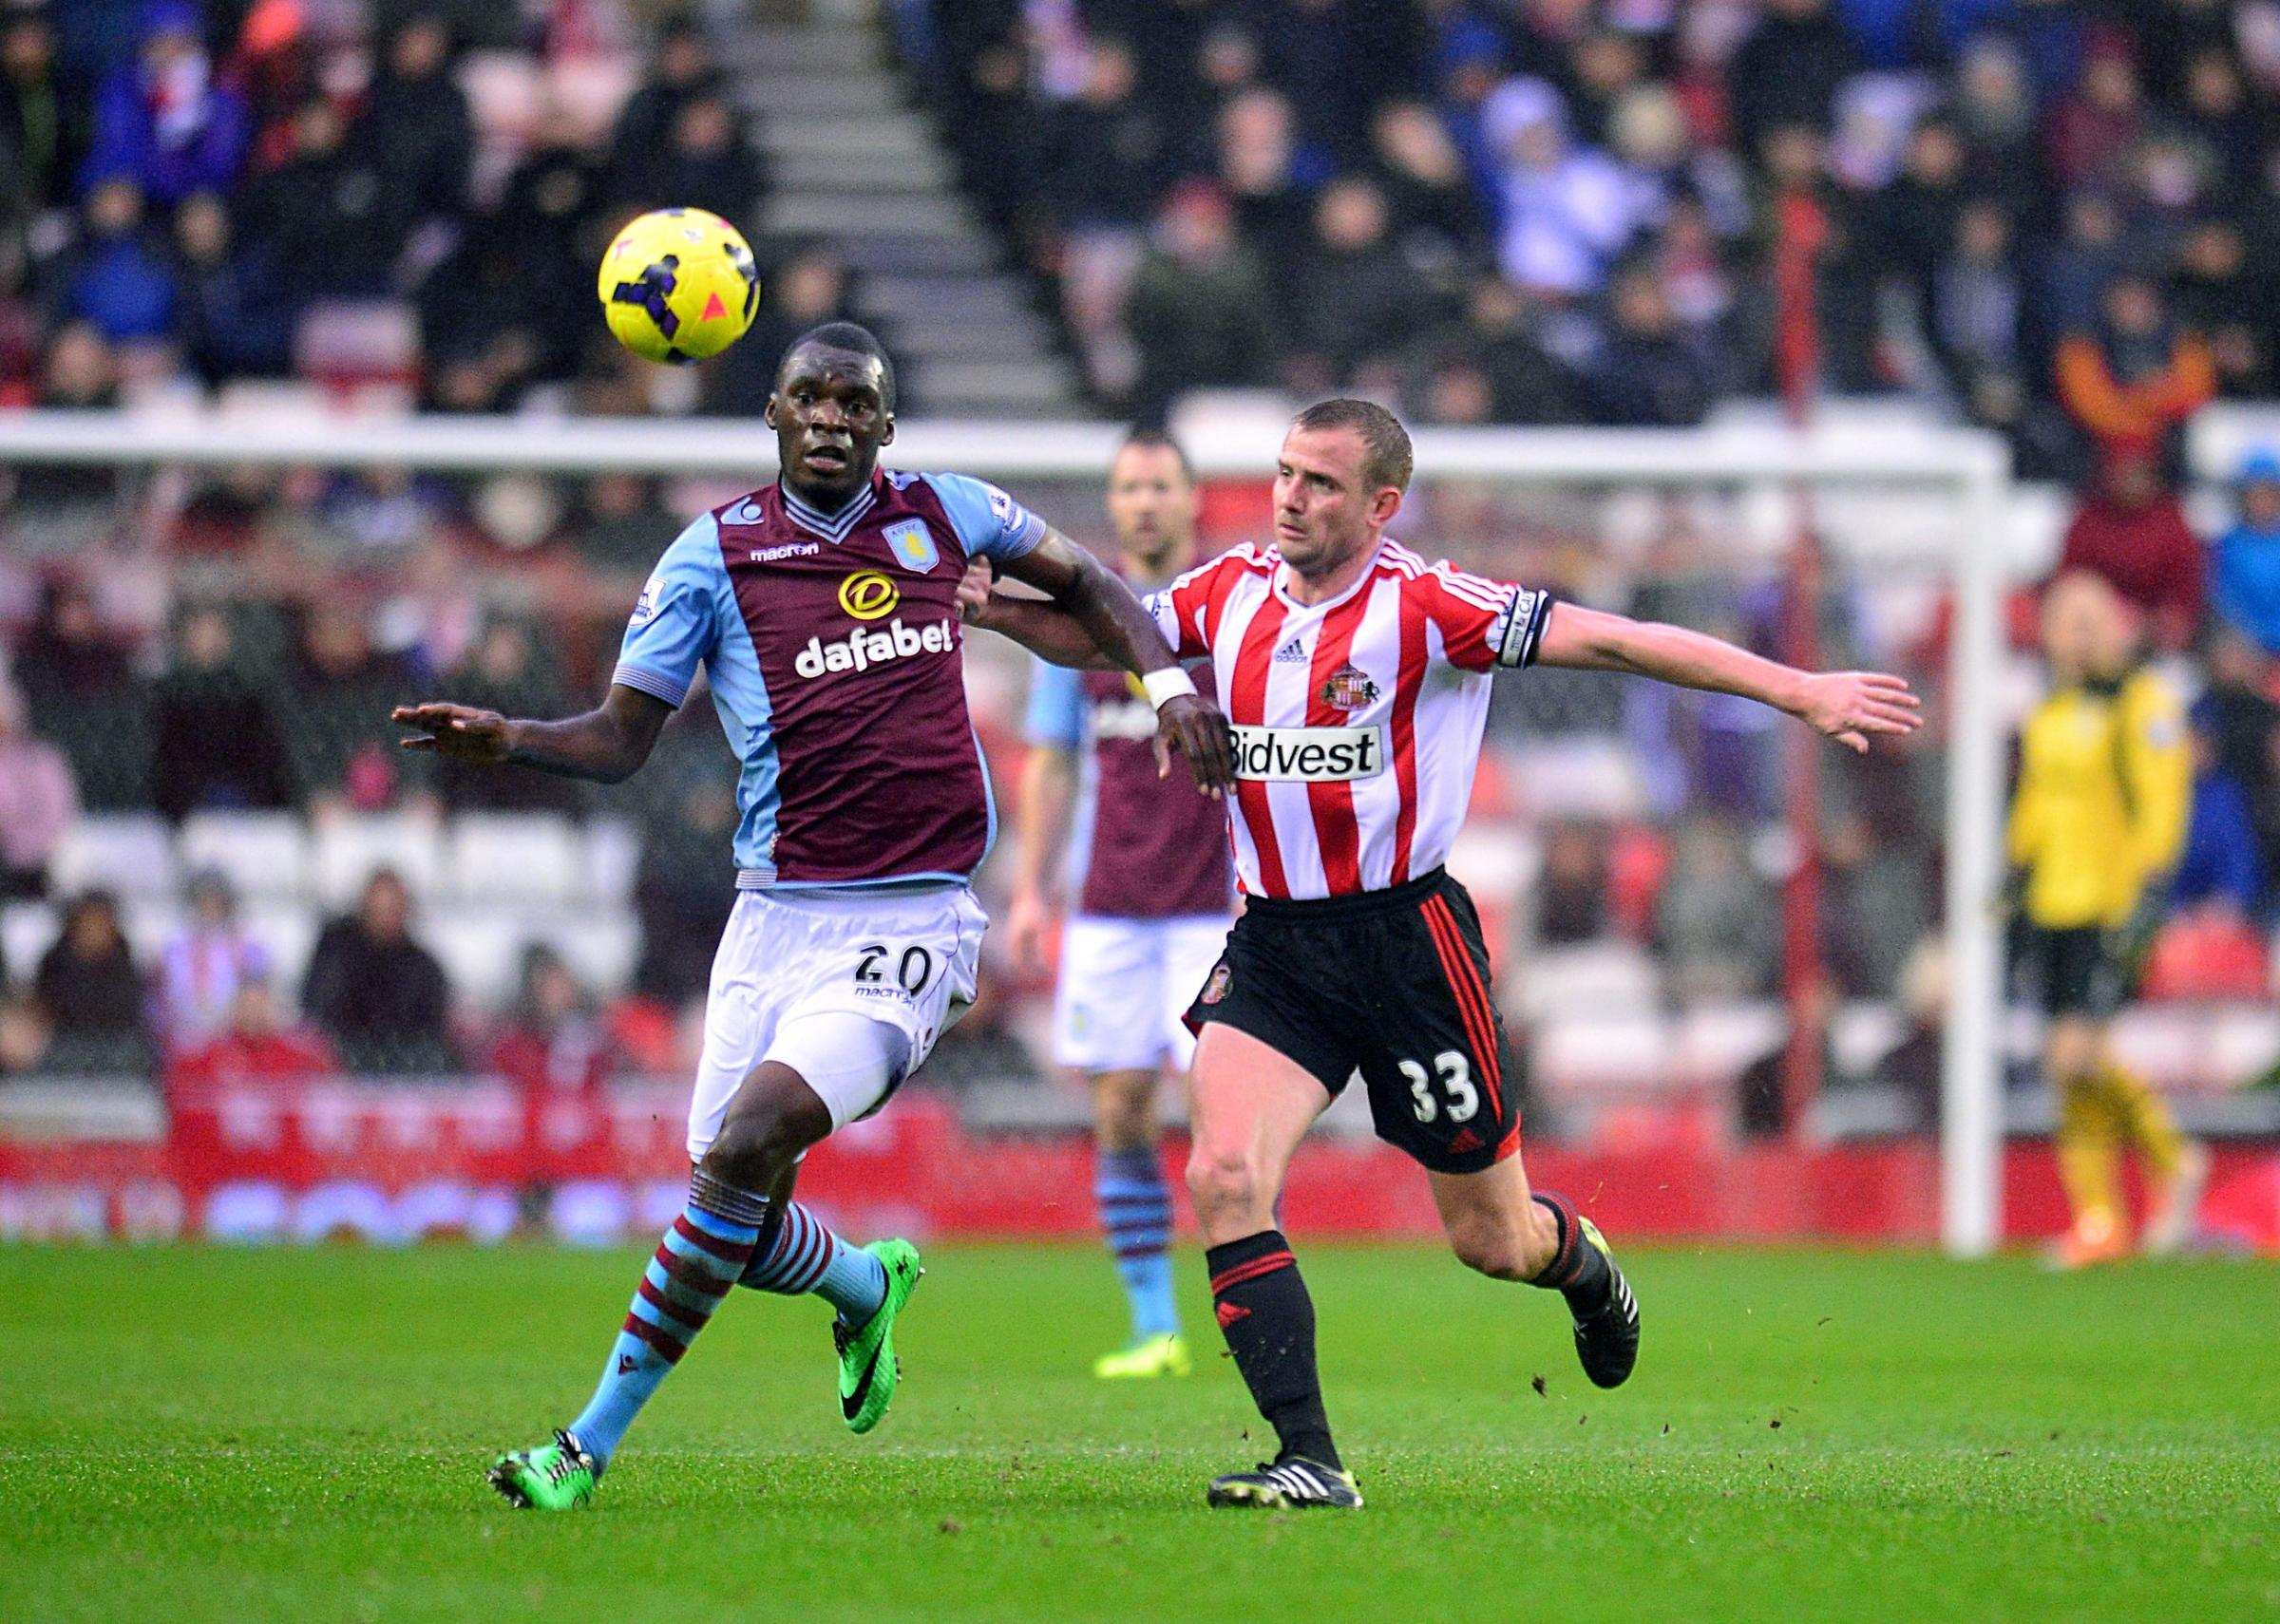 COSTLY: Sunderland's Lee Cattermole and Aston Villa's Christian Benteke battle for the ball during on Wednesday. Cattermole's mistake led to Villa scoring the only goal of the game